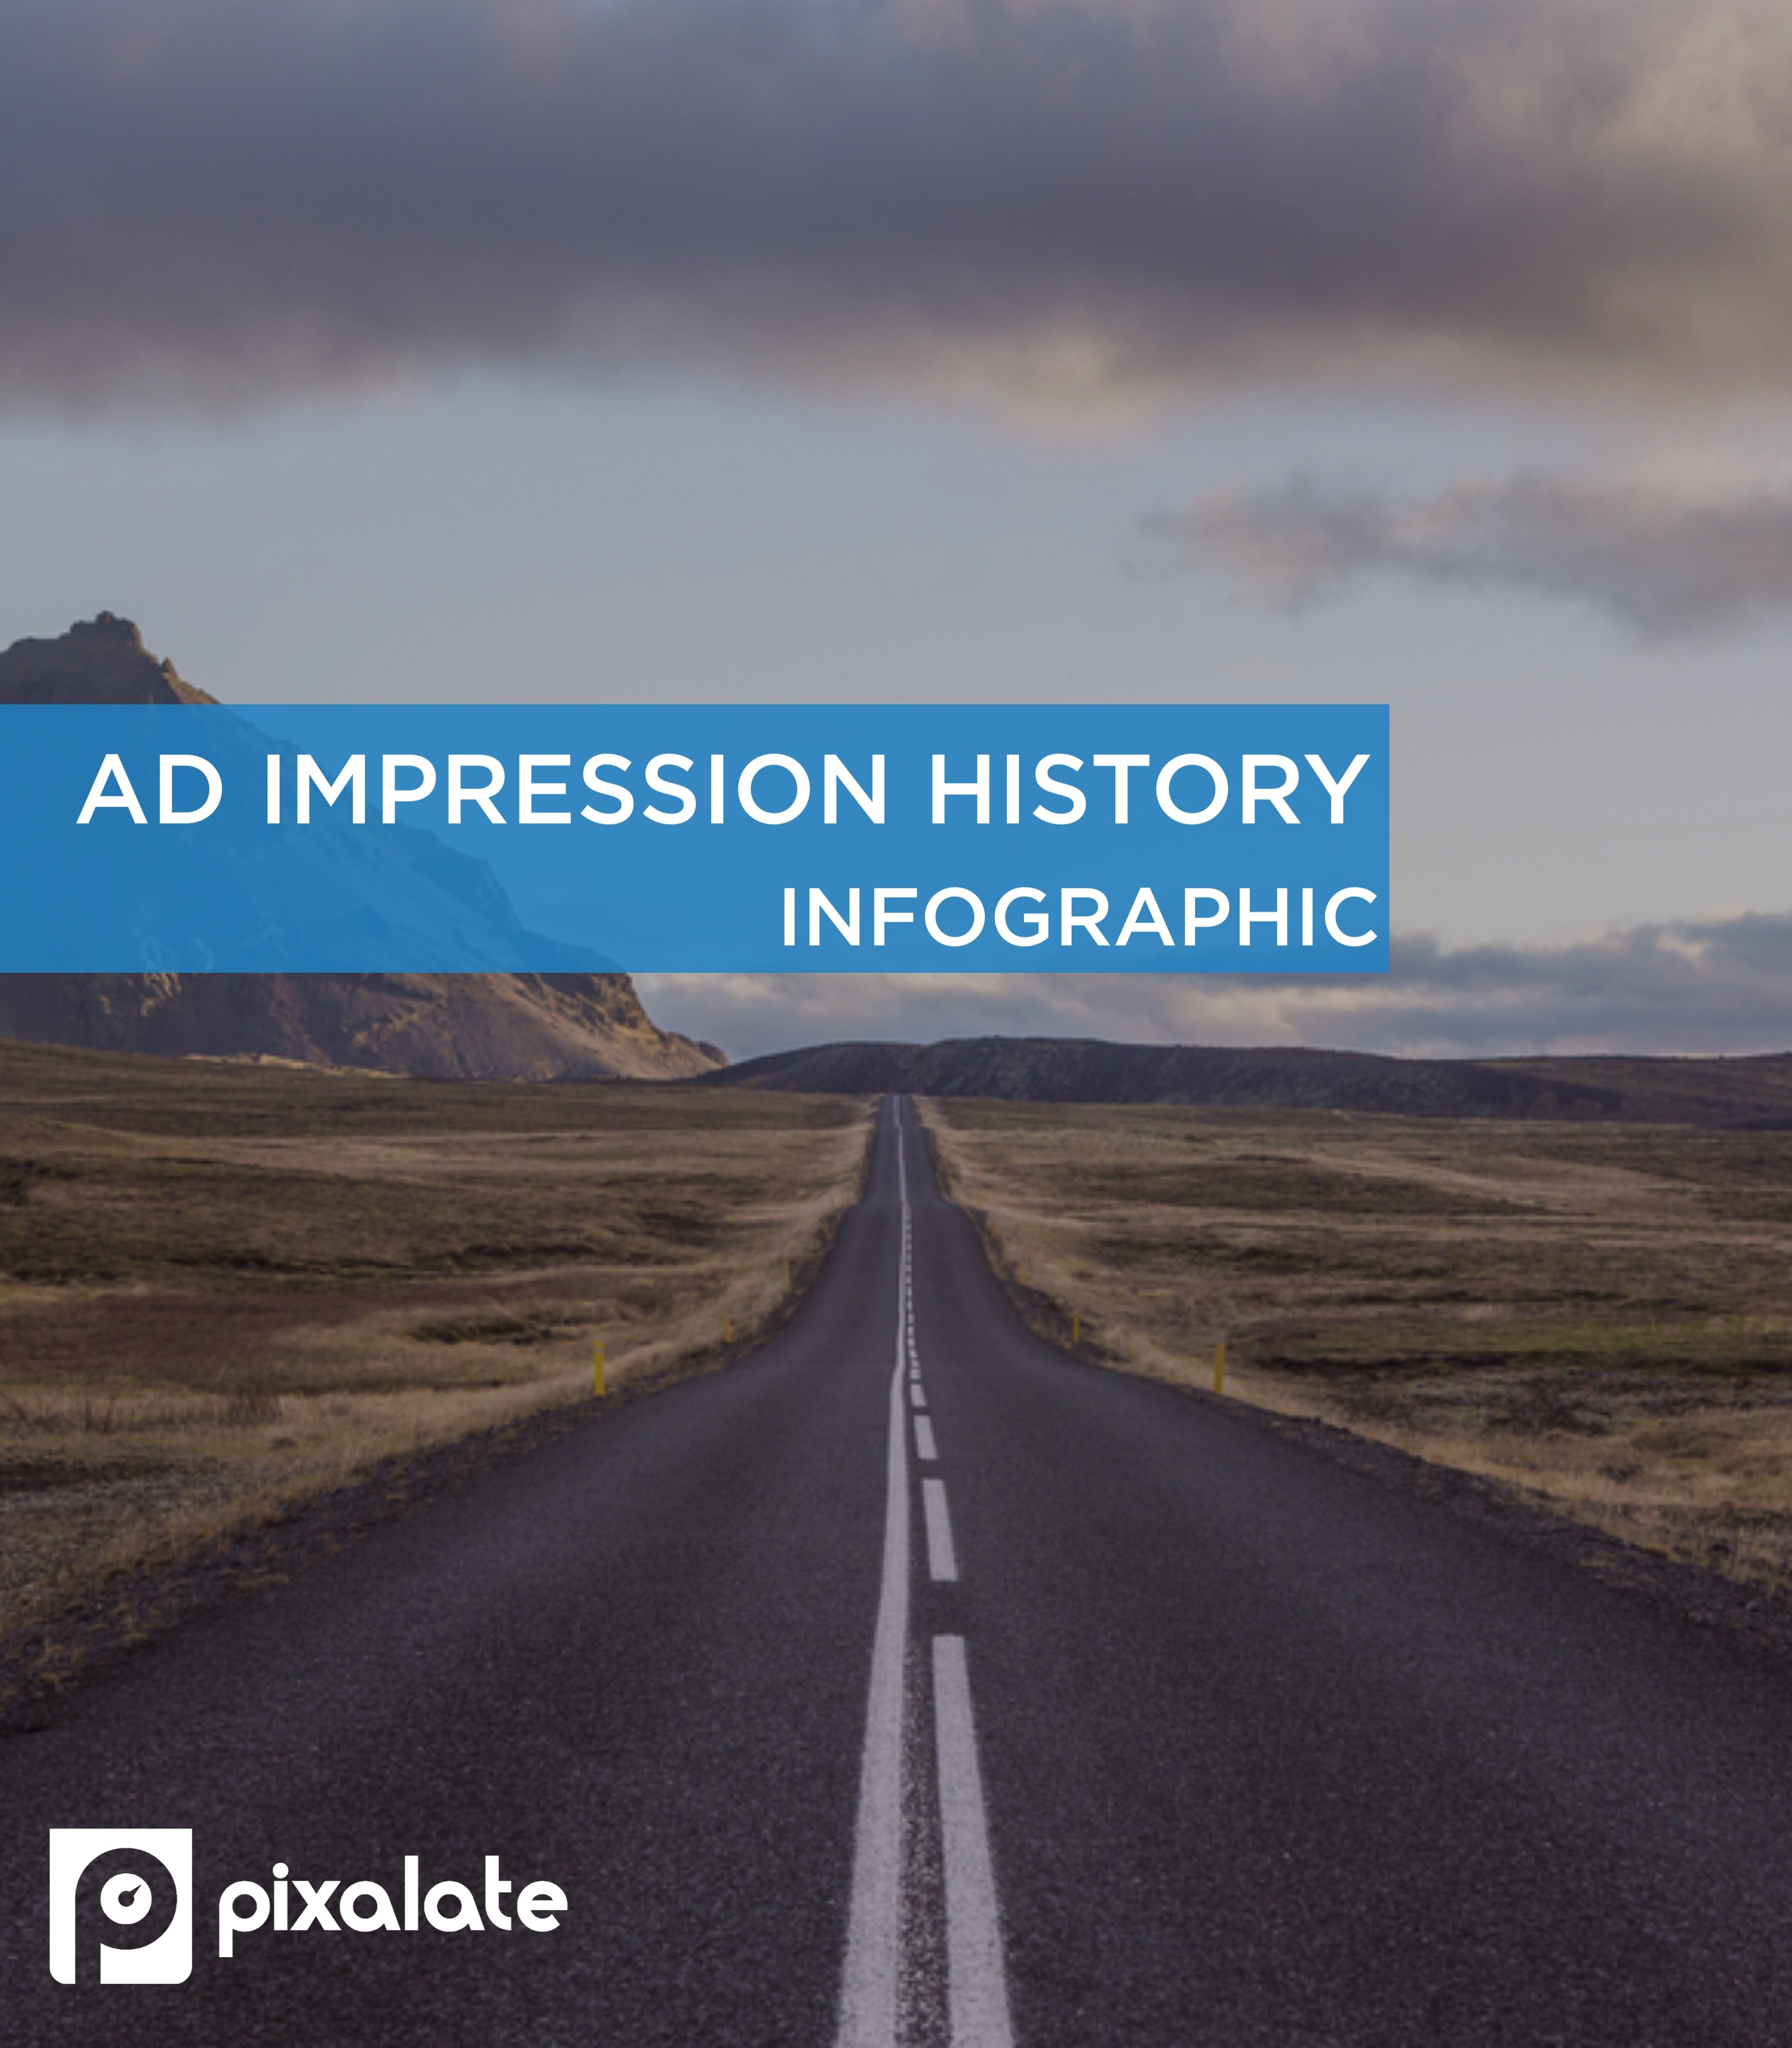 history-of-ad-impressions-landing-page-infographic